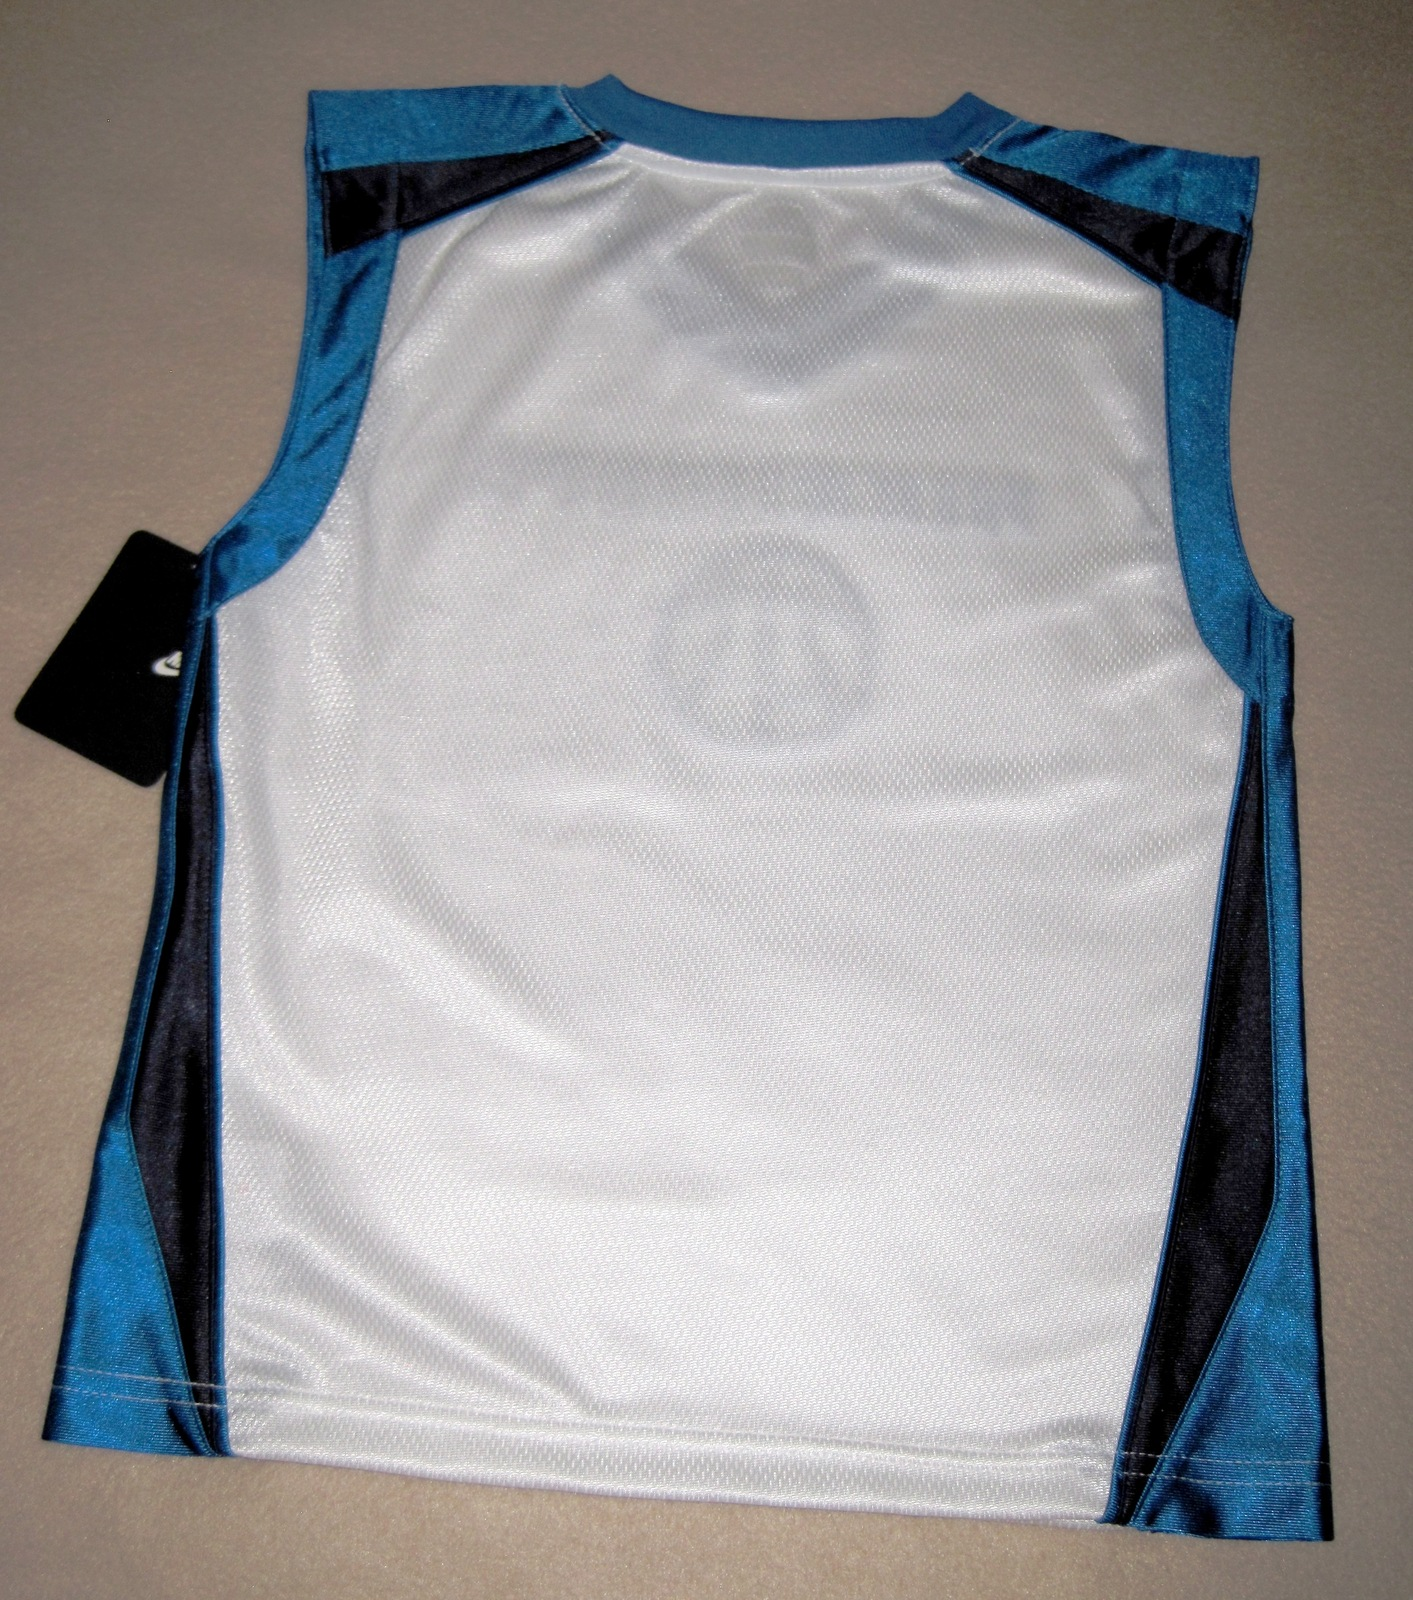 BOYS 6 - Nike Hoops - White-Electric Blue-Black BASKETBALL SPORTS JERSEY image 10